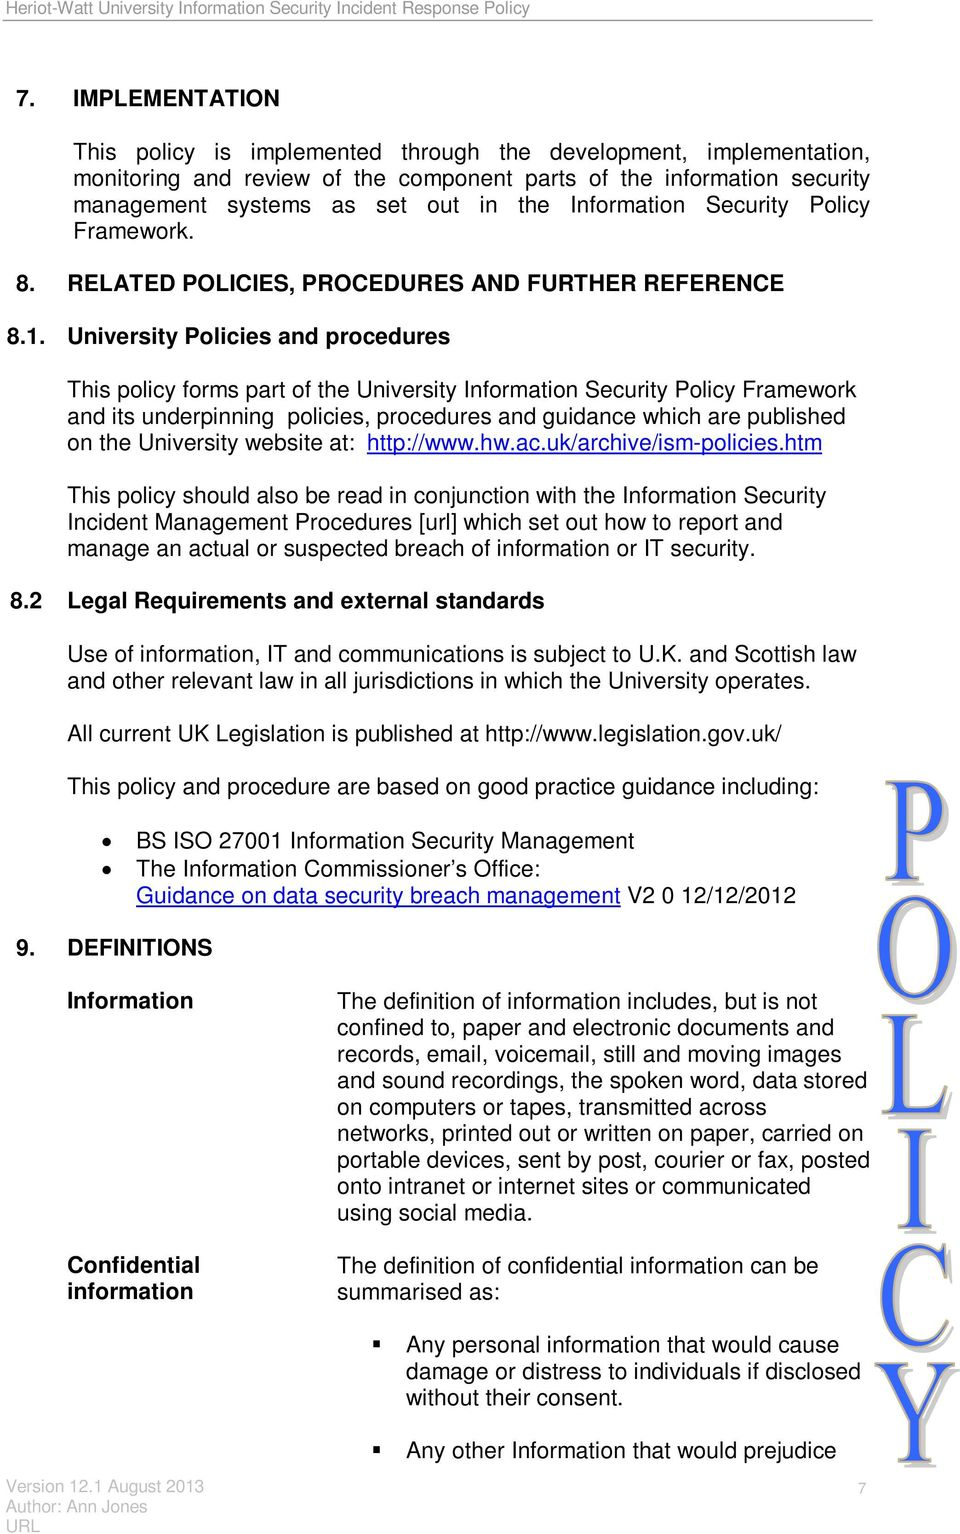 University Policies and procedures This policy forms part of the University Information Security Policy Framework and its underpinning policies, procedures and guidance which are published on the